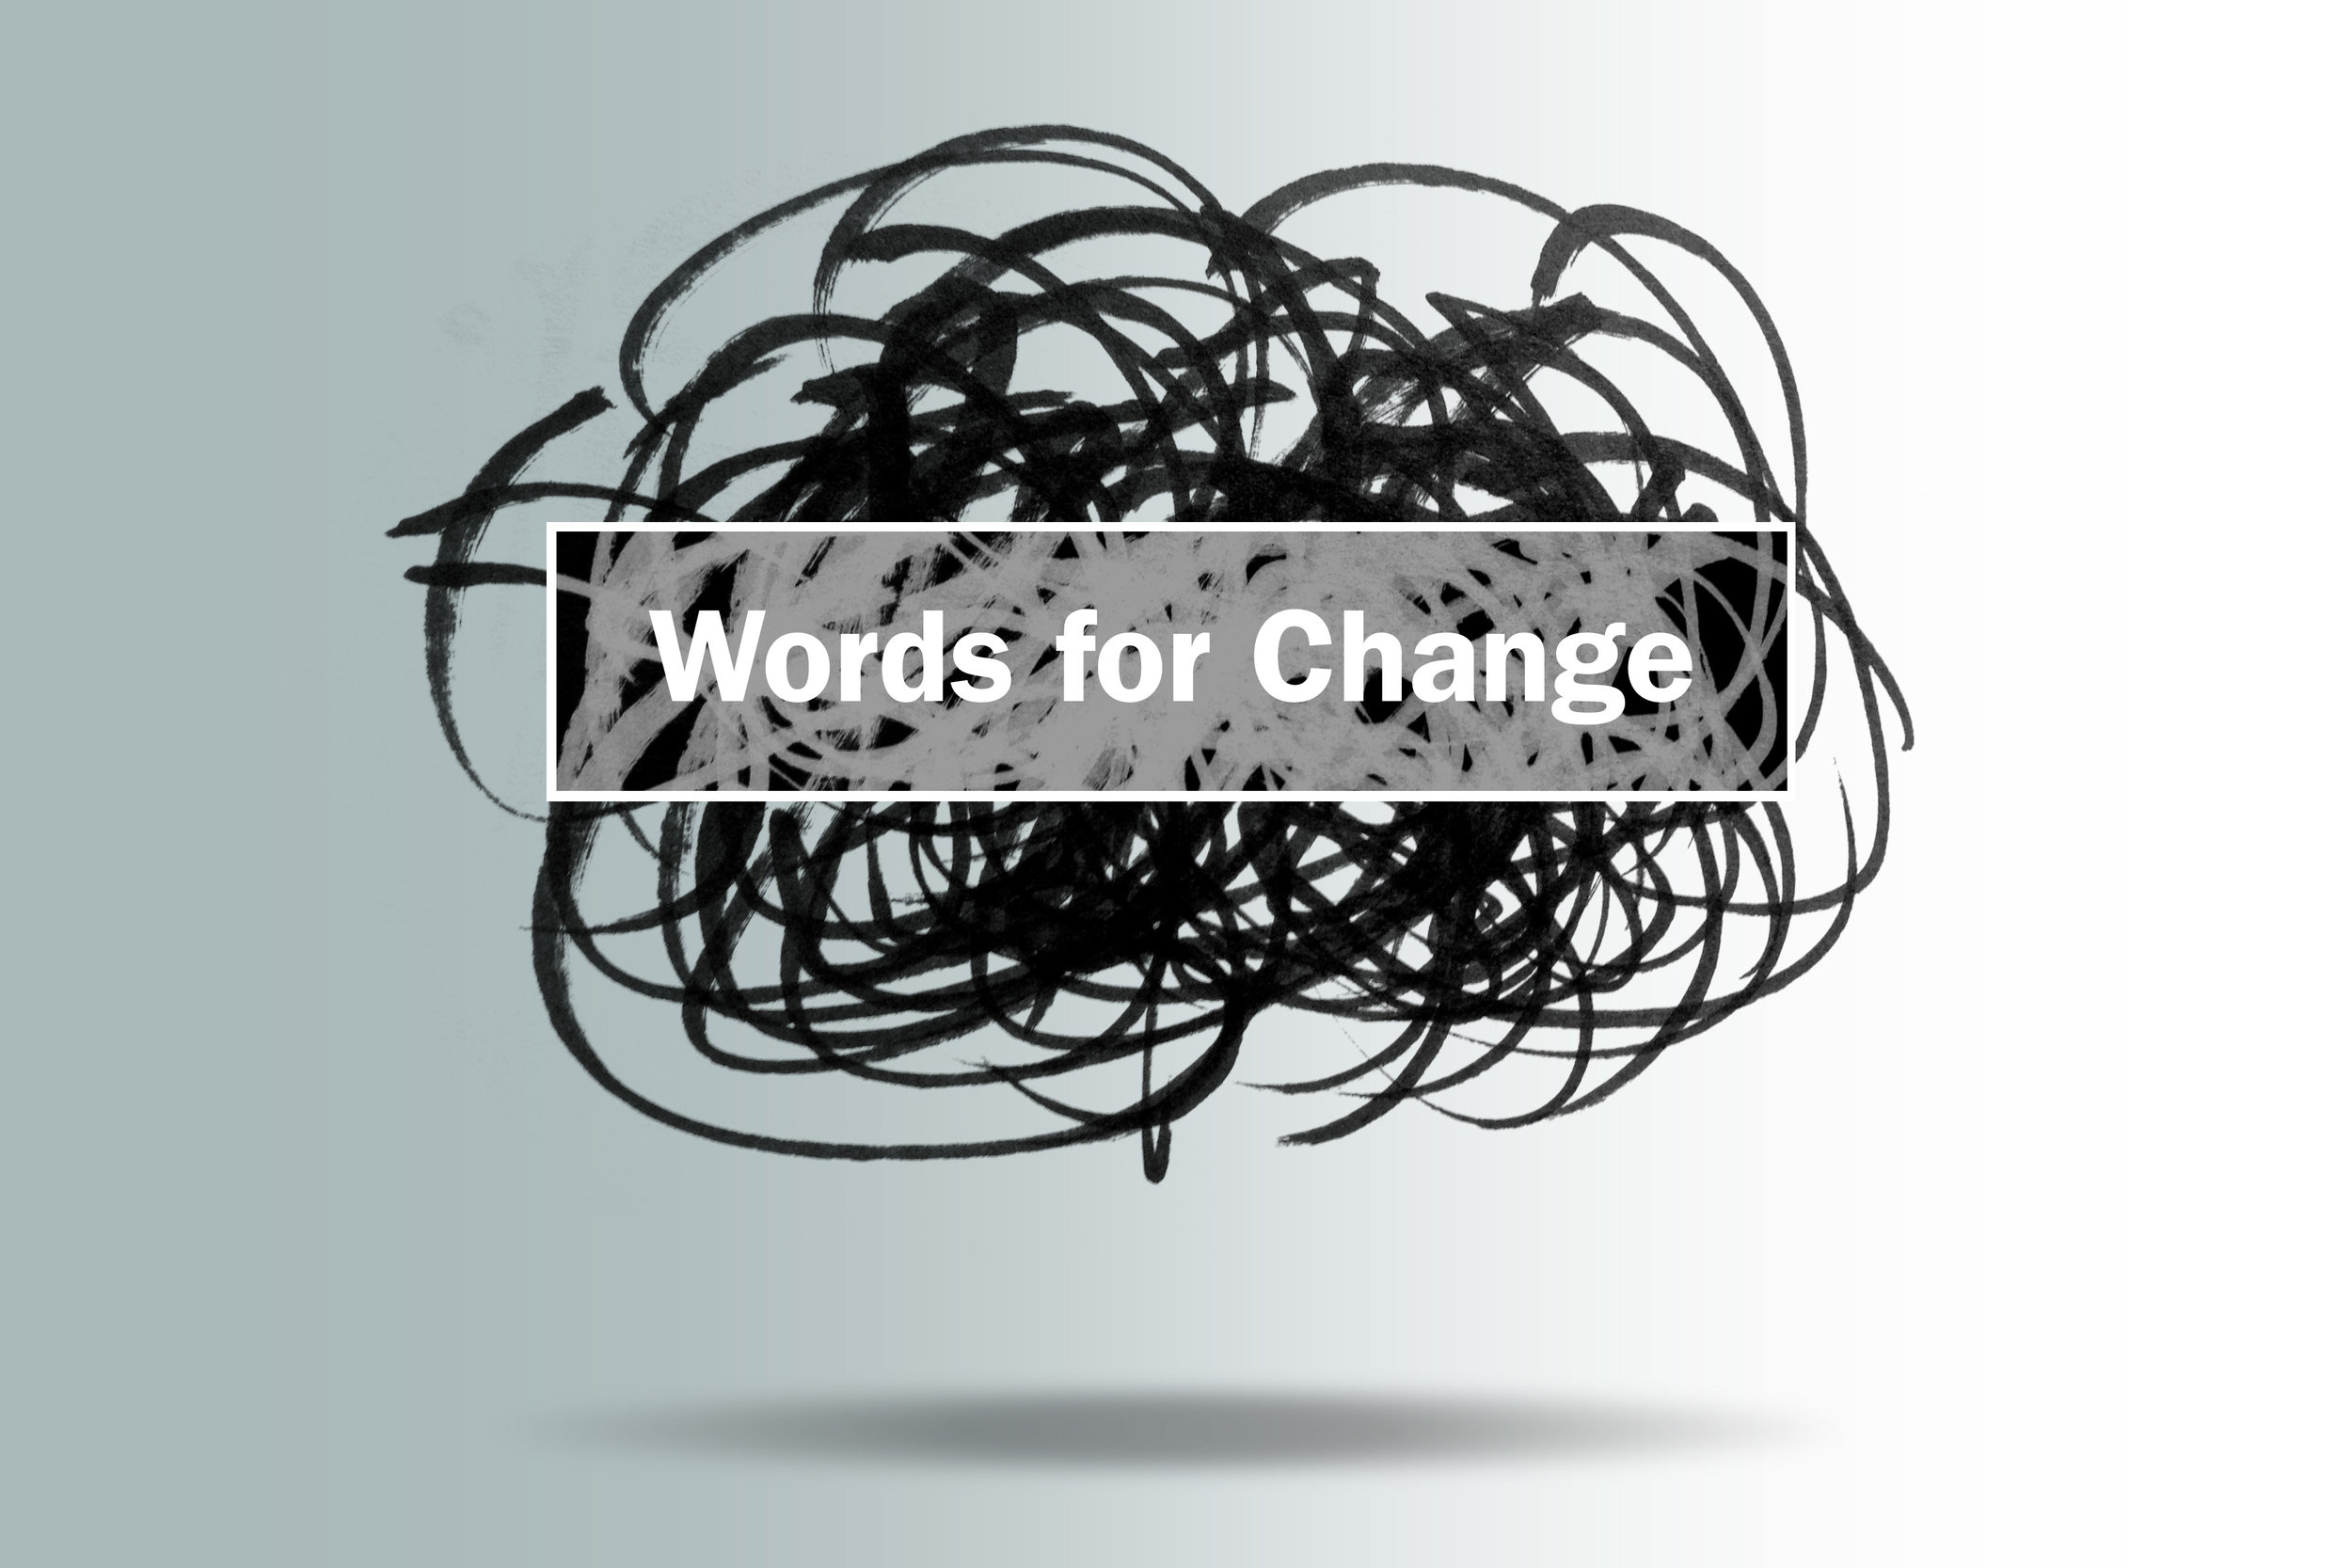 Words for Change workshop